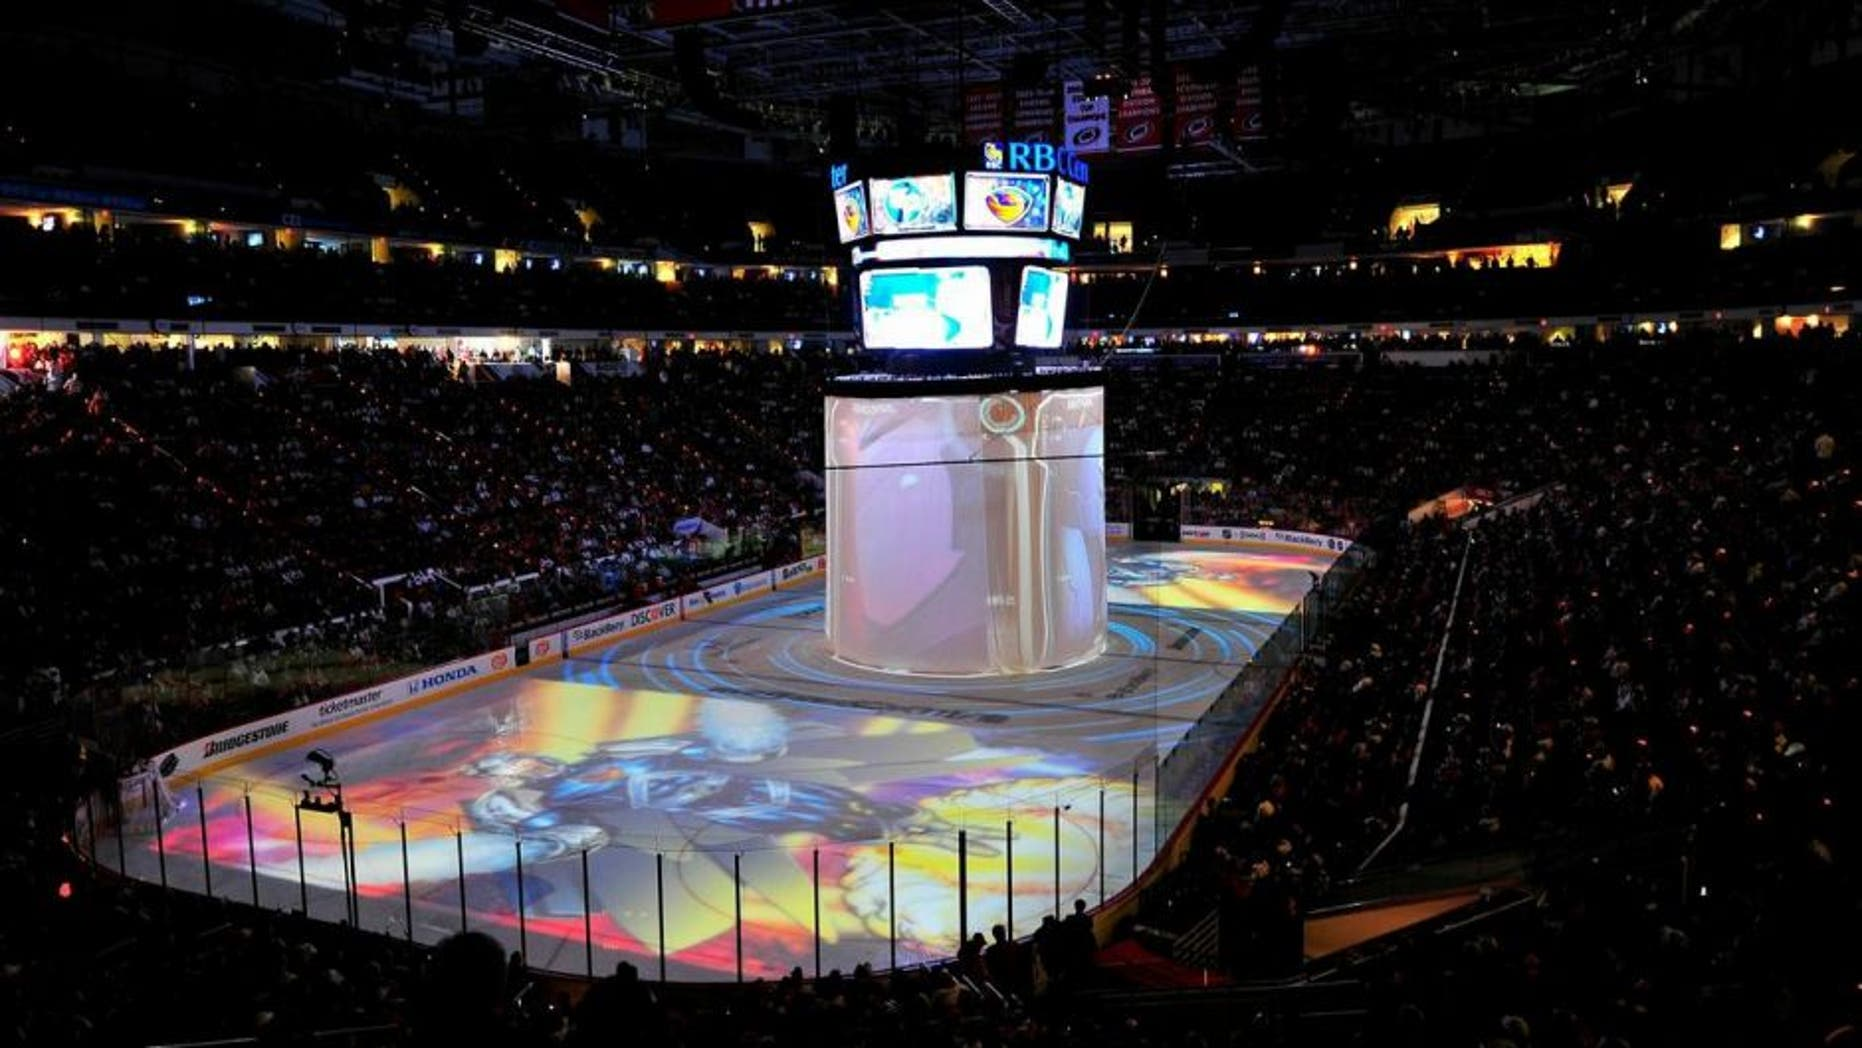 RALEIGH, NC - JANUARY 30: A general view of the arena is seen as images from 'The Guardian Project' are projected onto the rink during the 58th NHL All-Star Game at the RBC Center on January 30, 2011 in Raleigh, North Carolina. Team Lidstrom won 11-10. (Photo by AJ Messier/NHLI via Getty Images)